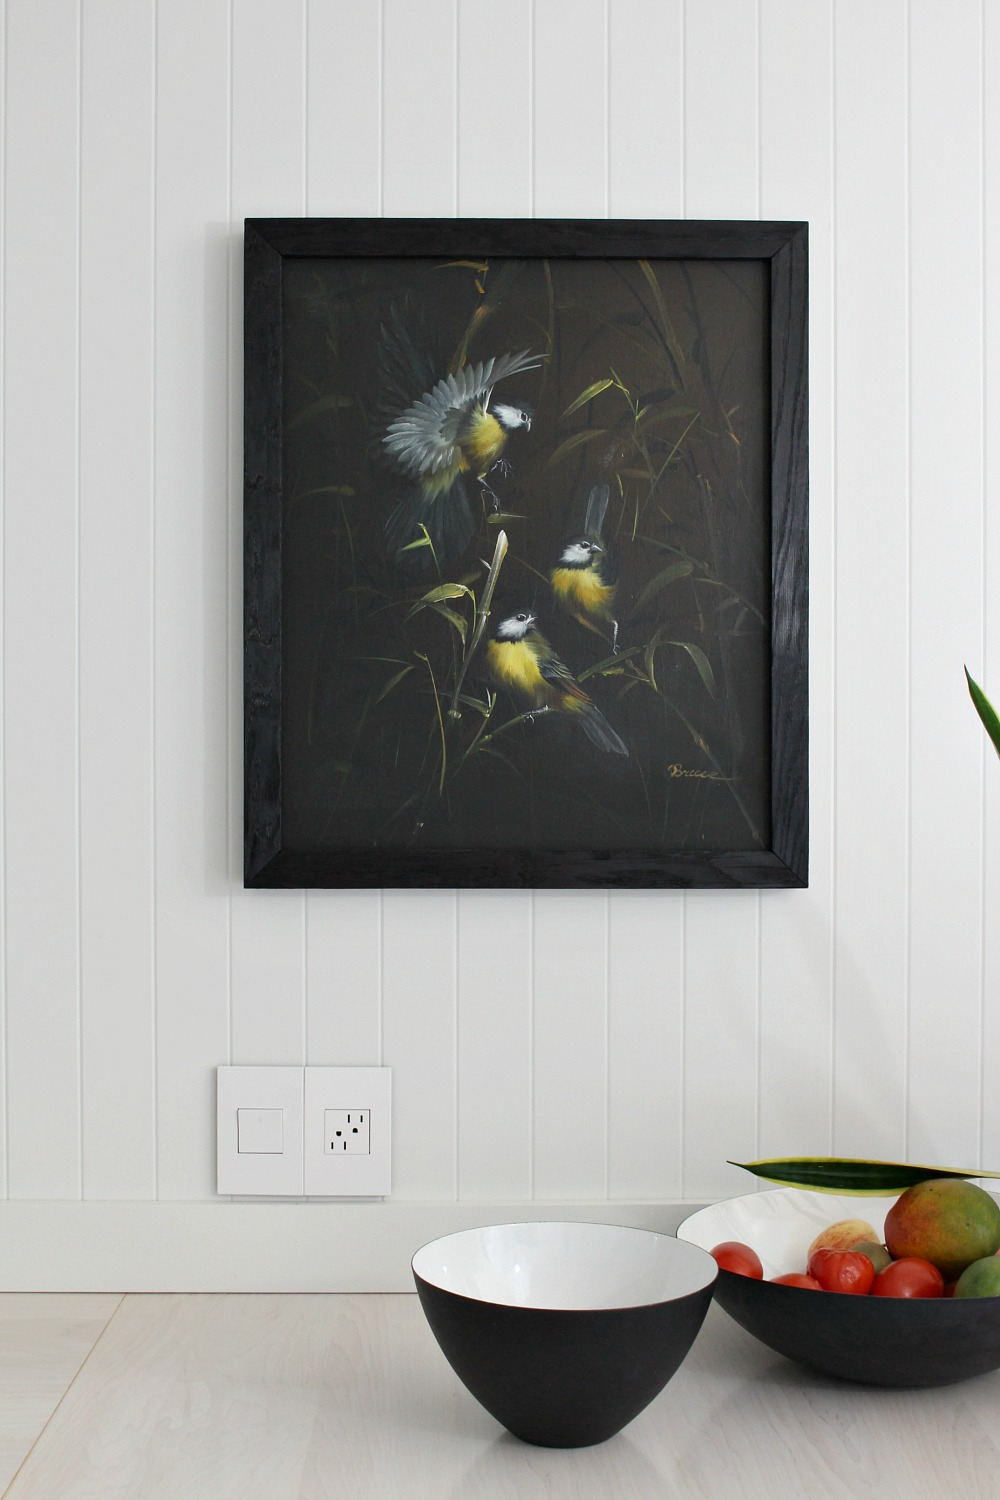 Build this Modern Black Frame for Art